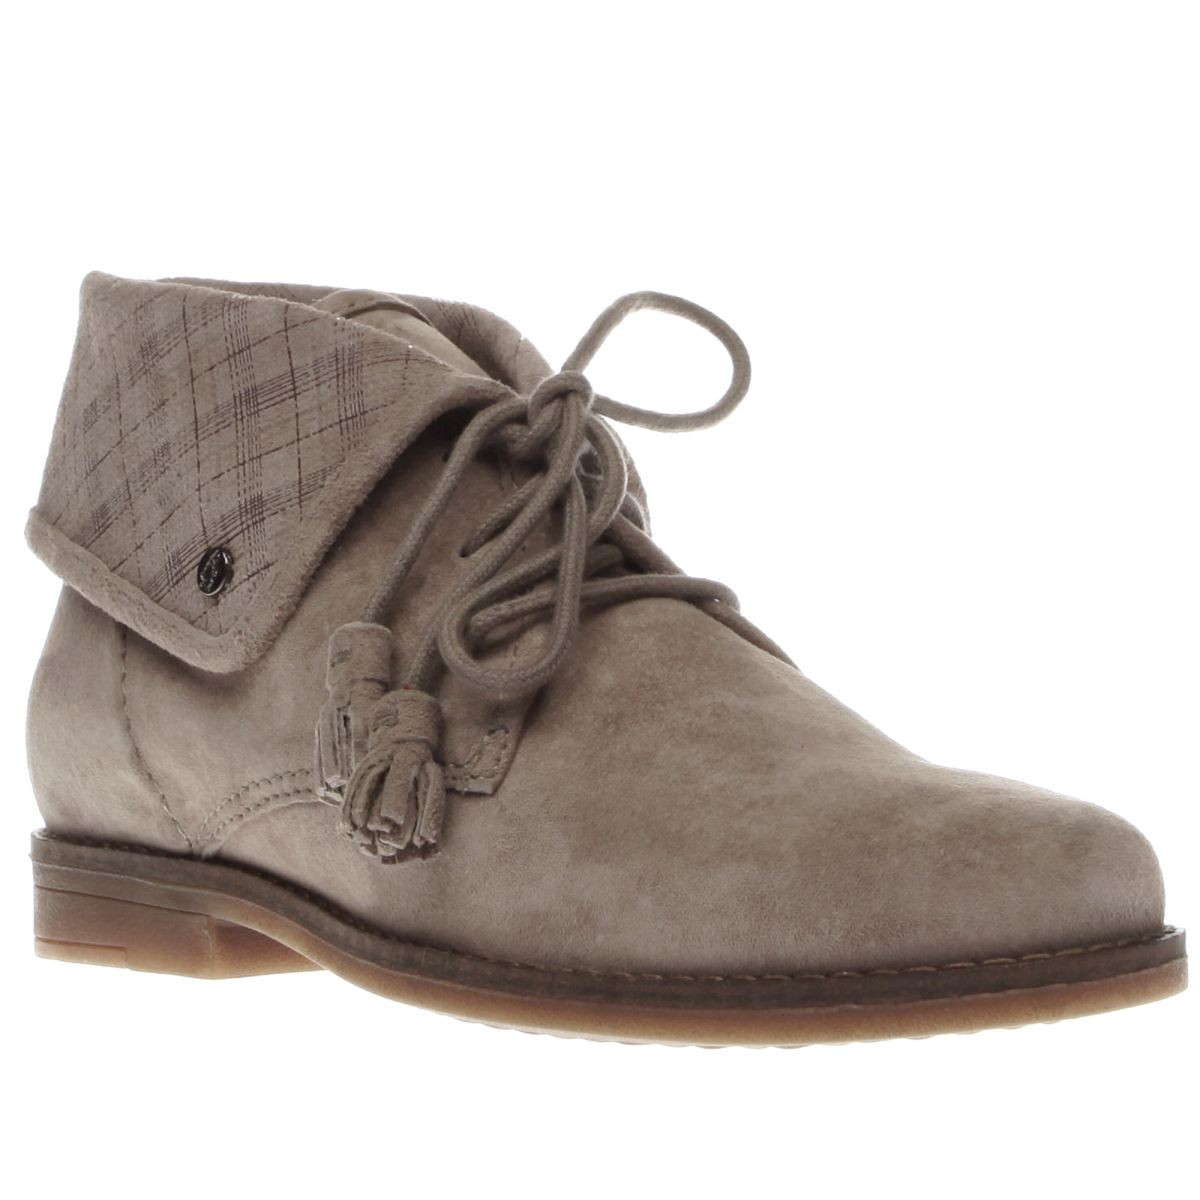 Hush Puppies Hush Puppies Taupe Cayto Boots